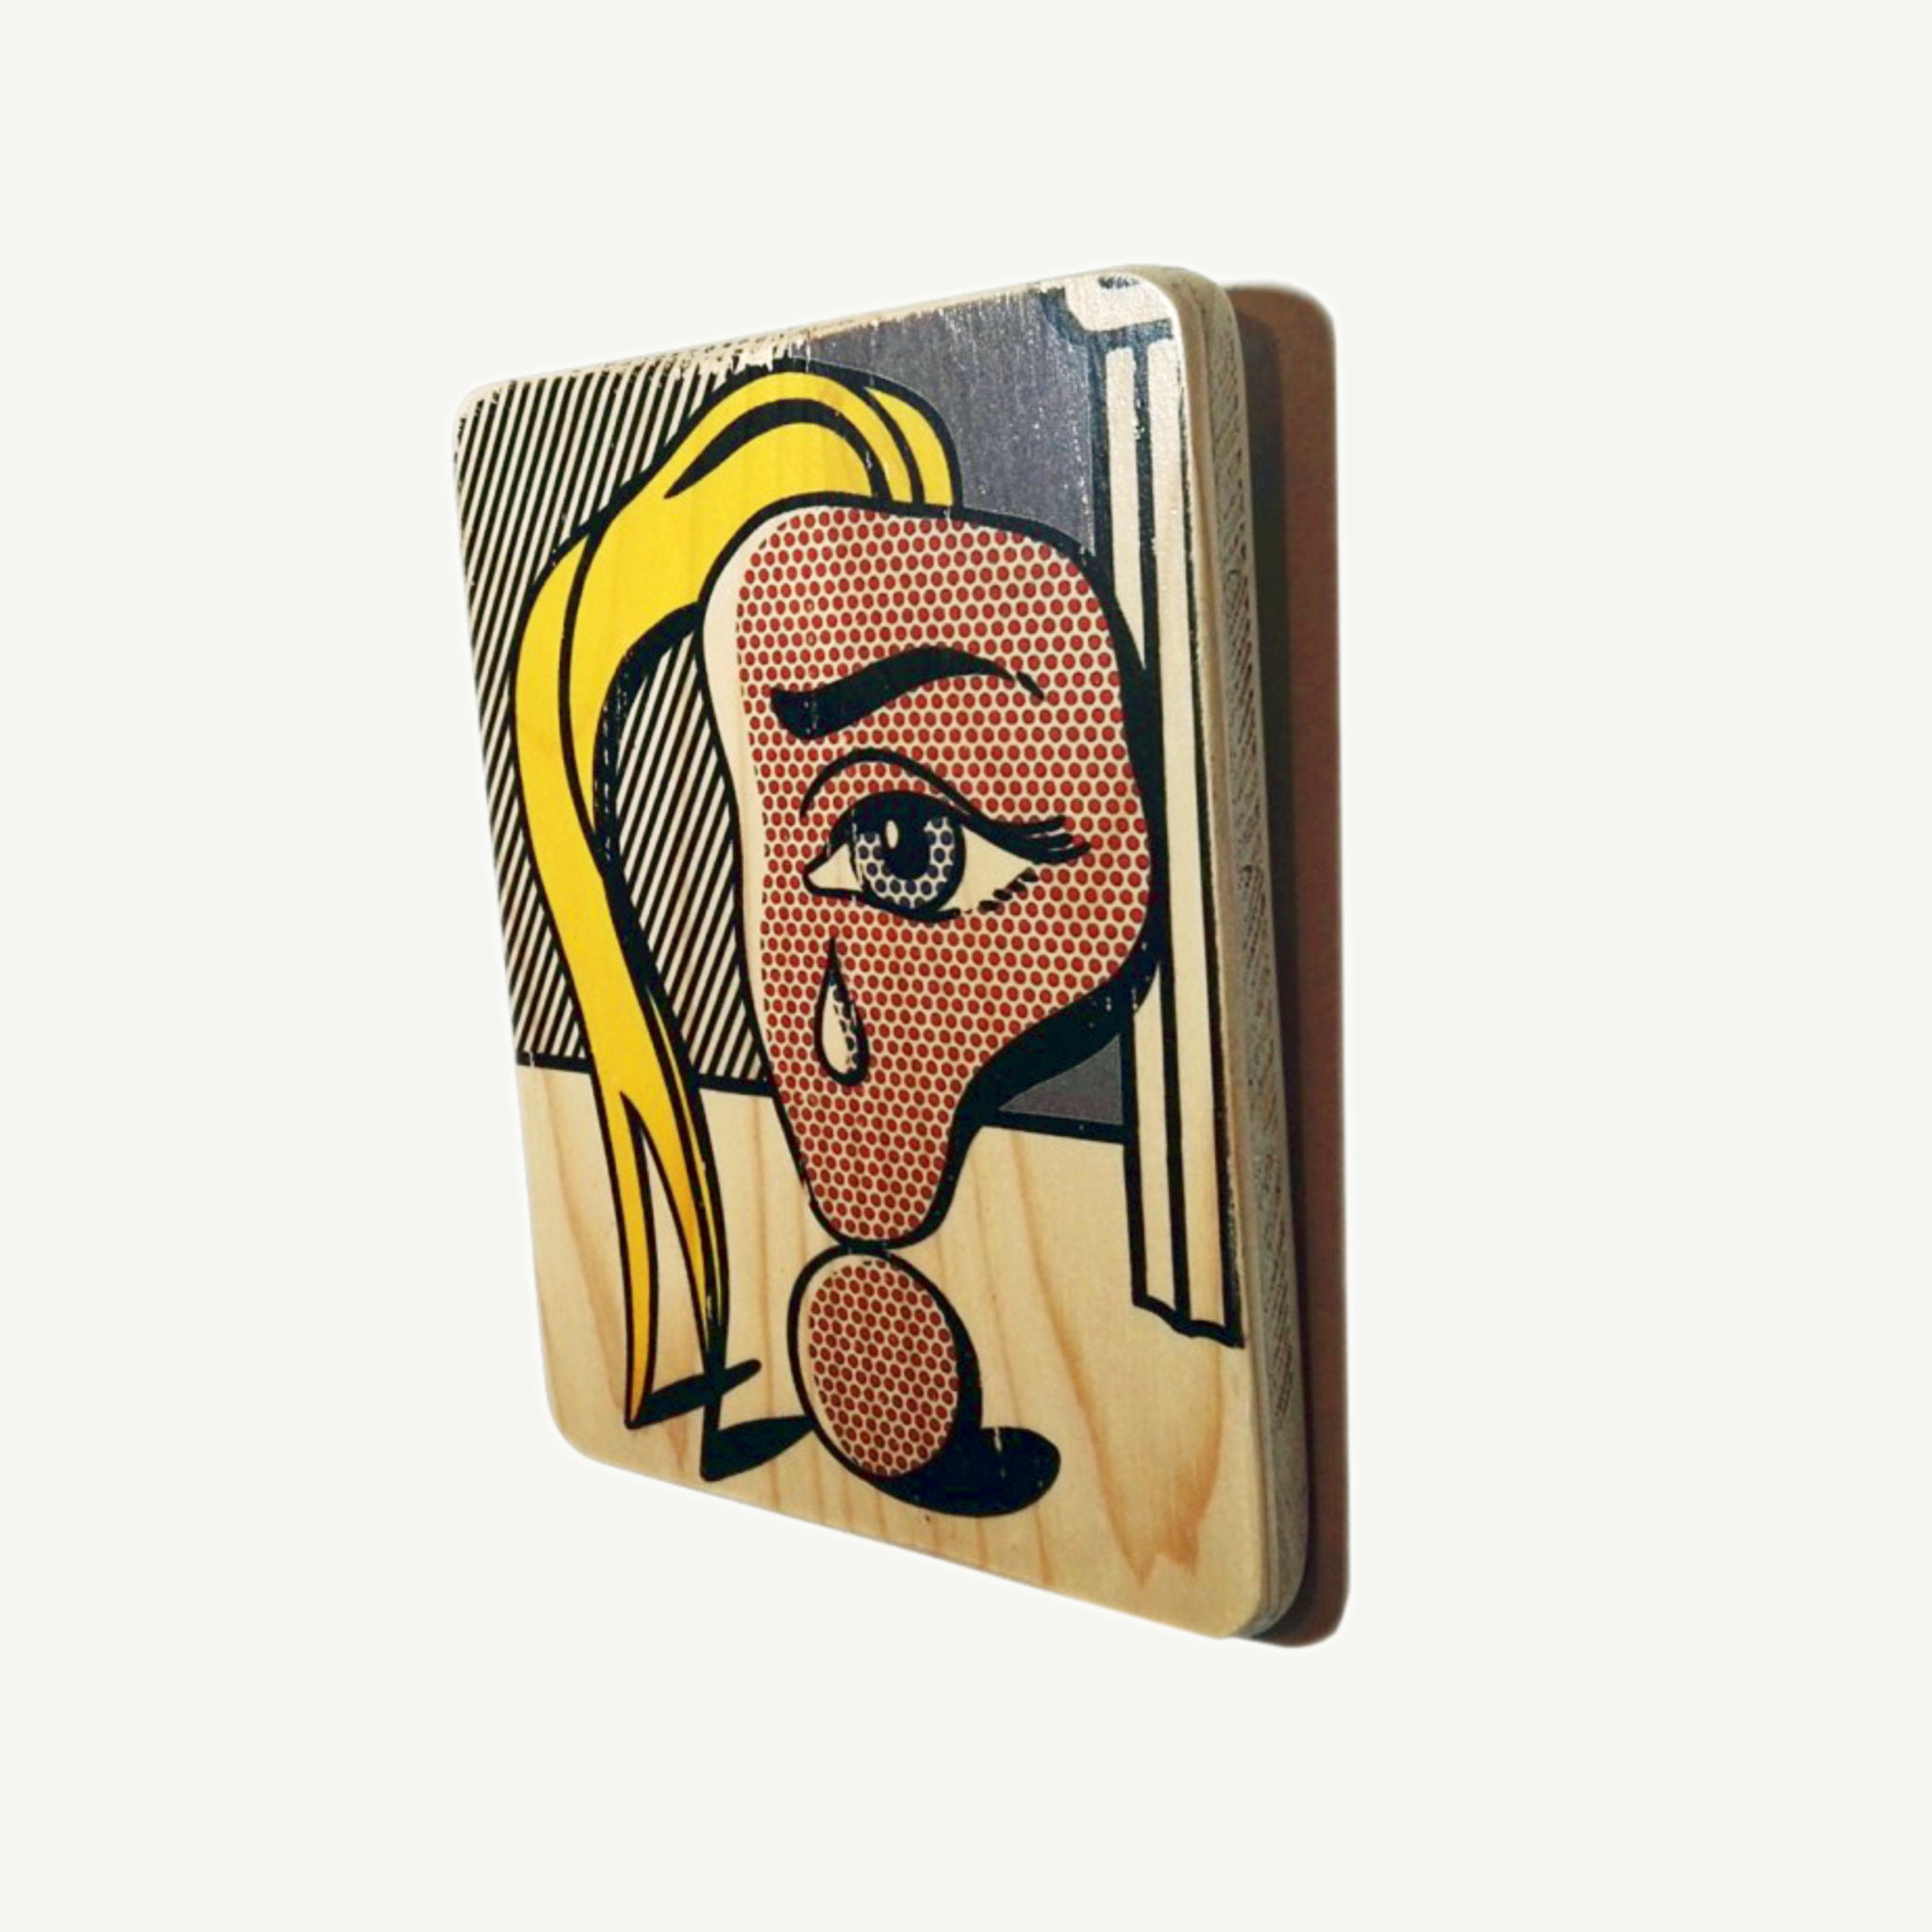 Roy Liechtenstein - Girl with tear  - Recycling wood Art - artisanal print - www.artesanalwoodprint.com